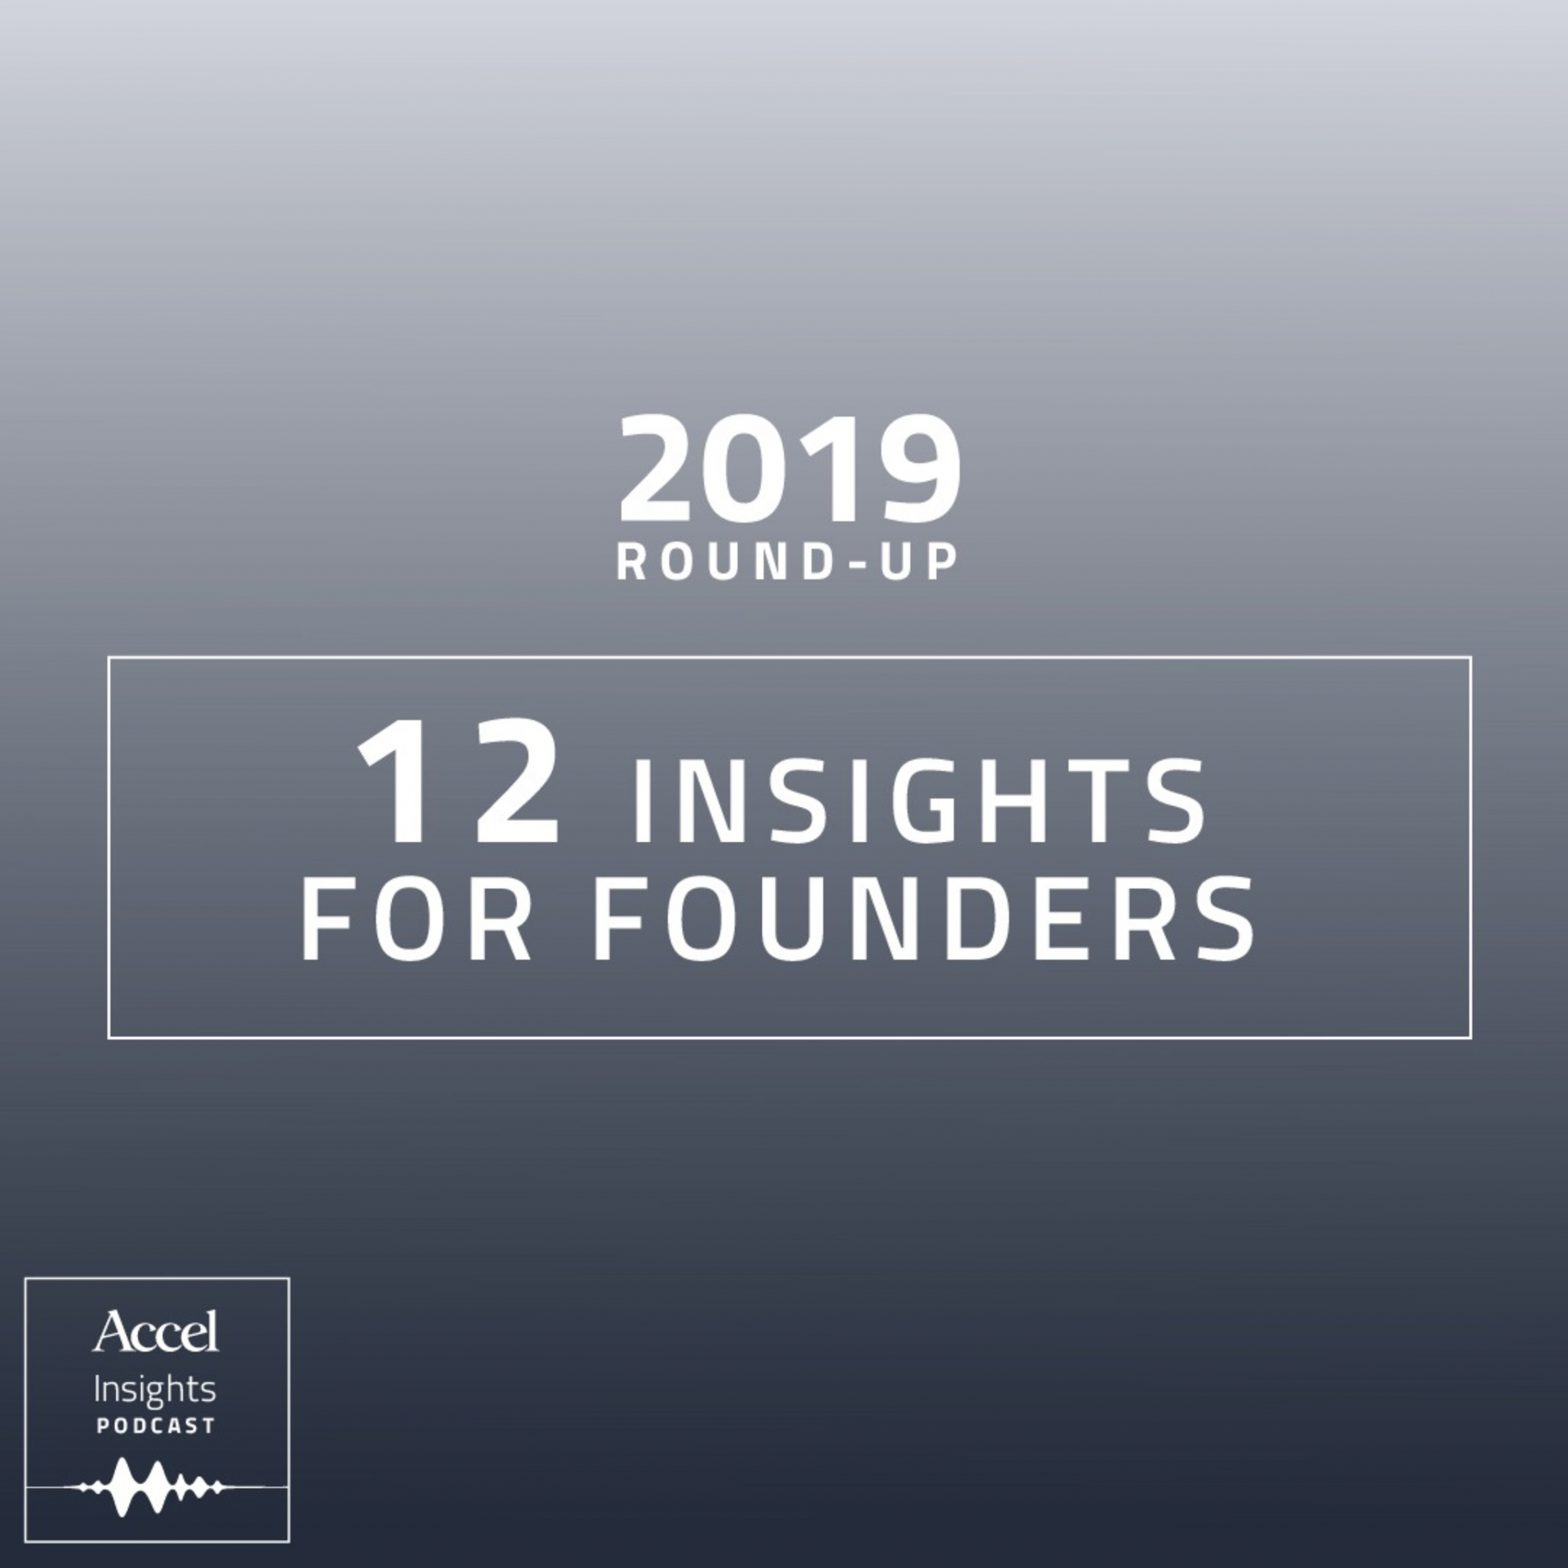 INSIGHTS #45 – 2019 Roundup – 12 Insights for Founders